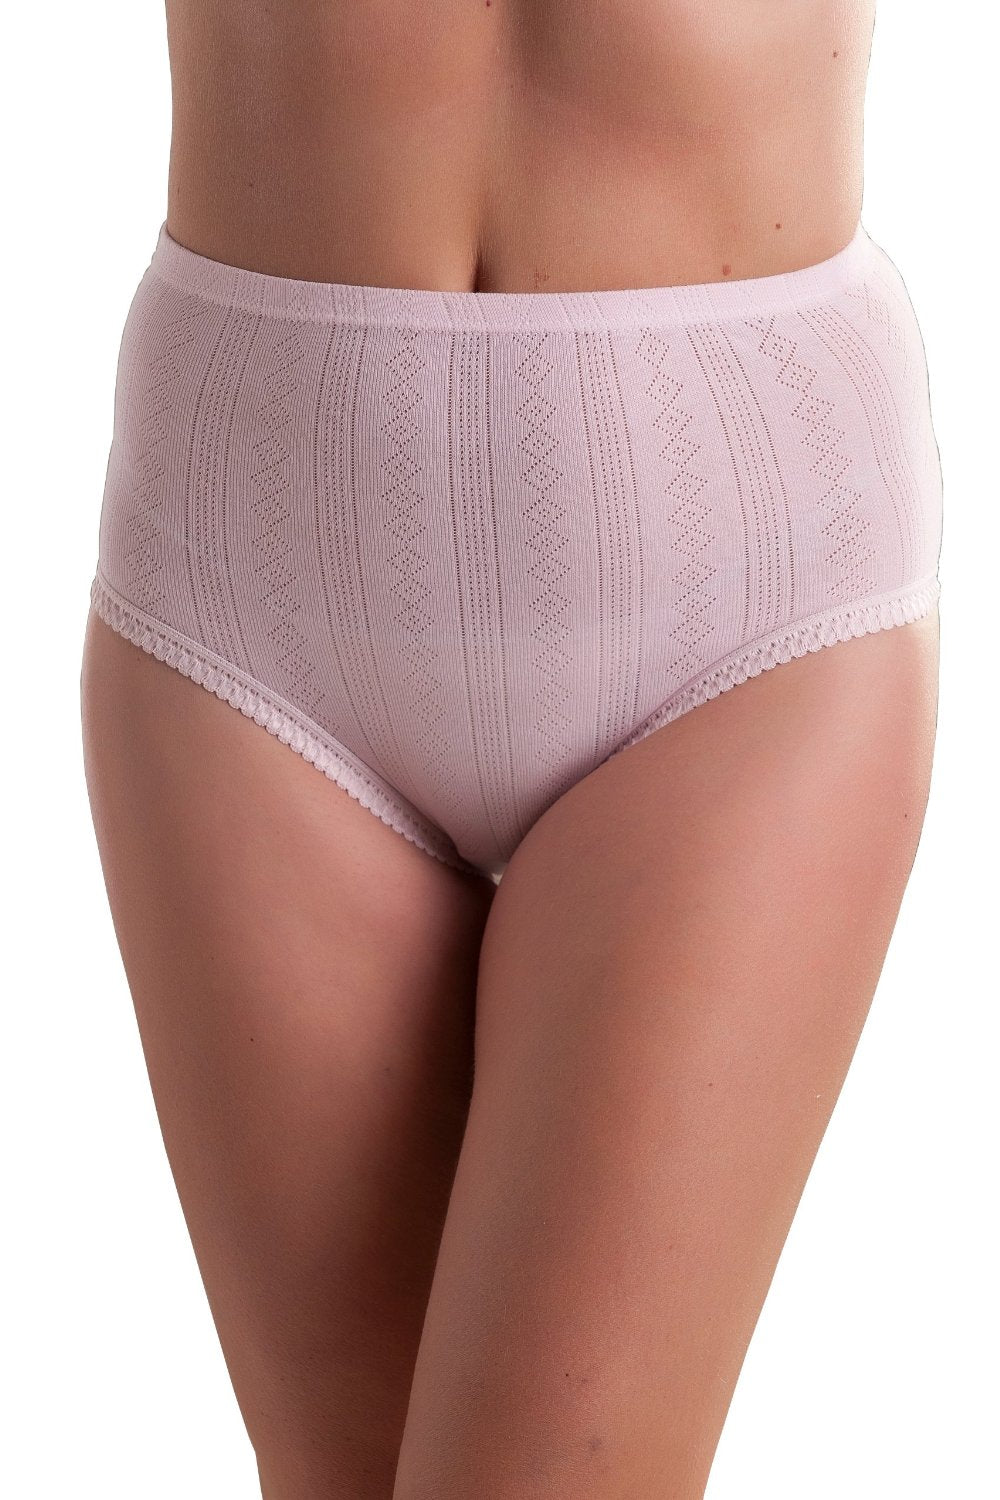 3 PACK : Passionelle® Womens Jacquard Designed Pastel Colour Comfortable Covered Elastic Soft Cotton Briefs